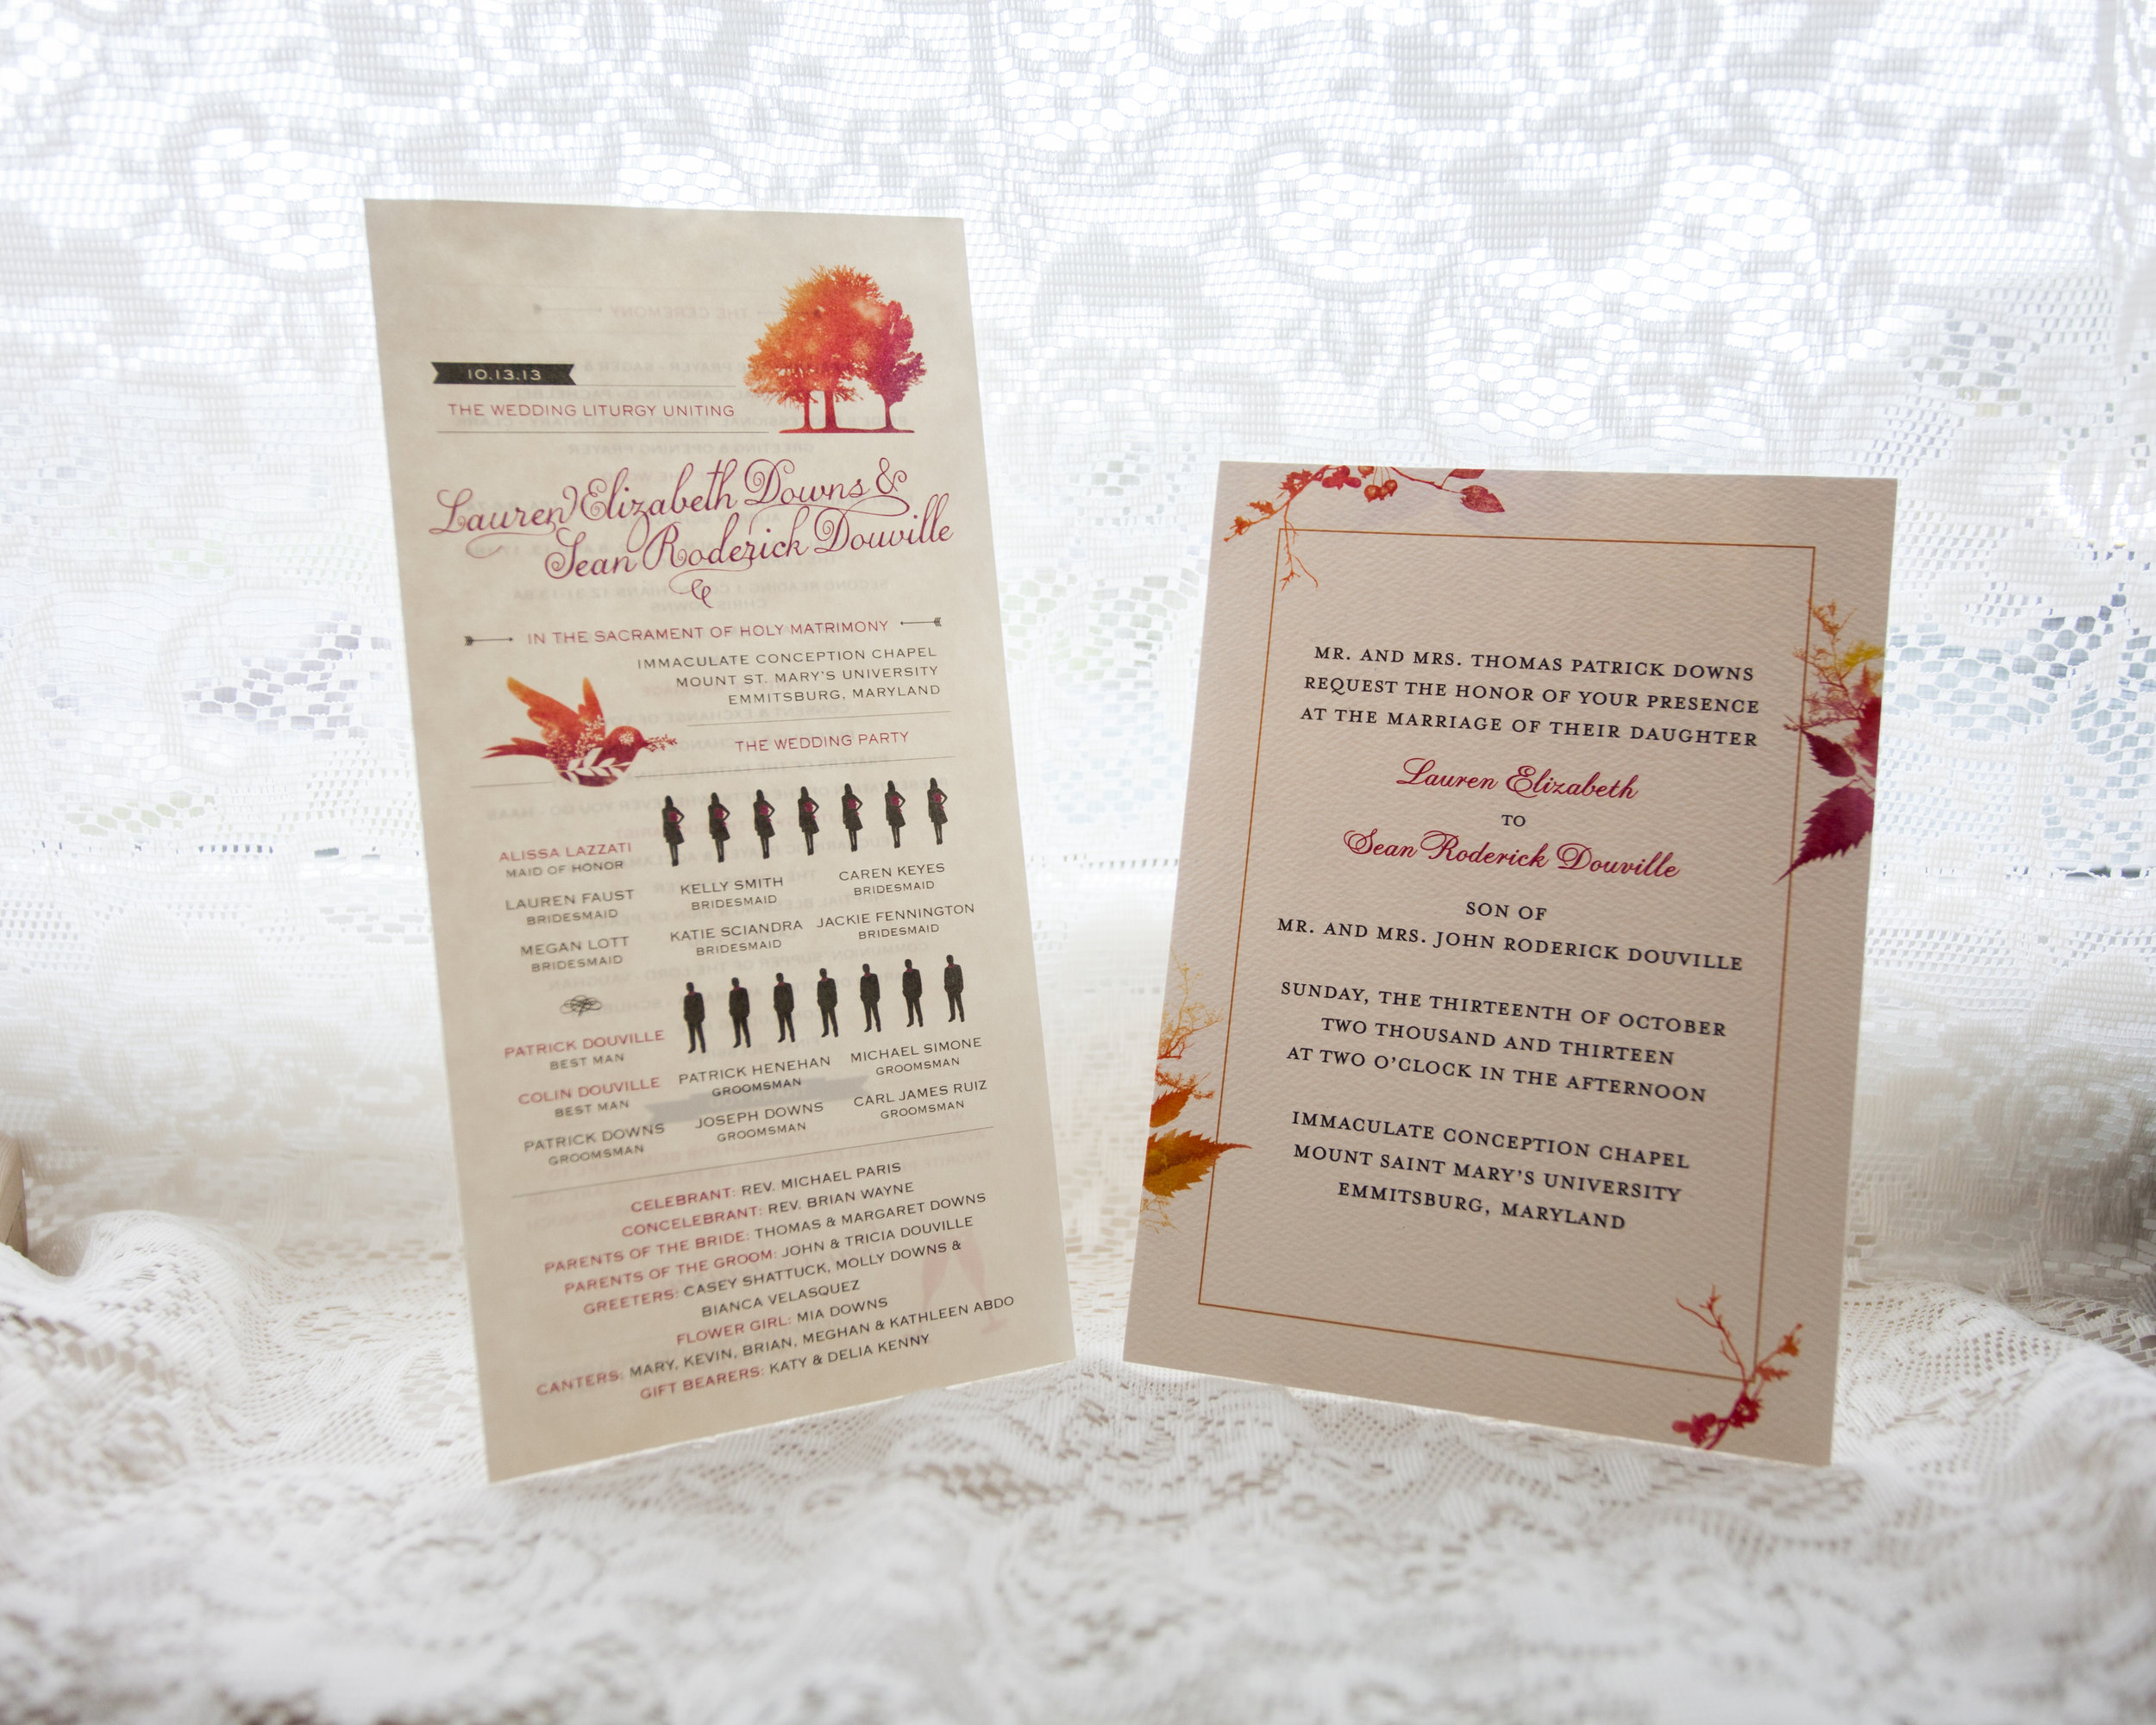 wedding invitation program fall wedding orange maryland pennsylvania.jpg